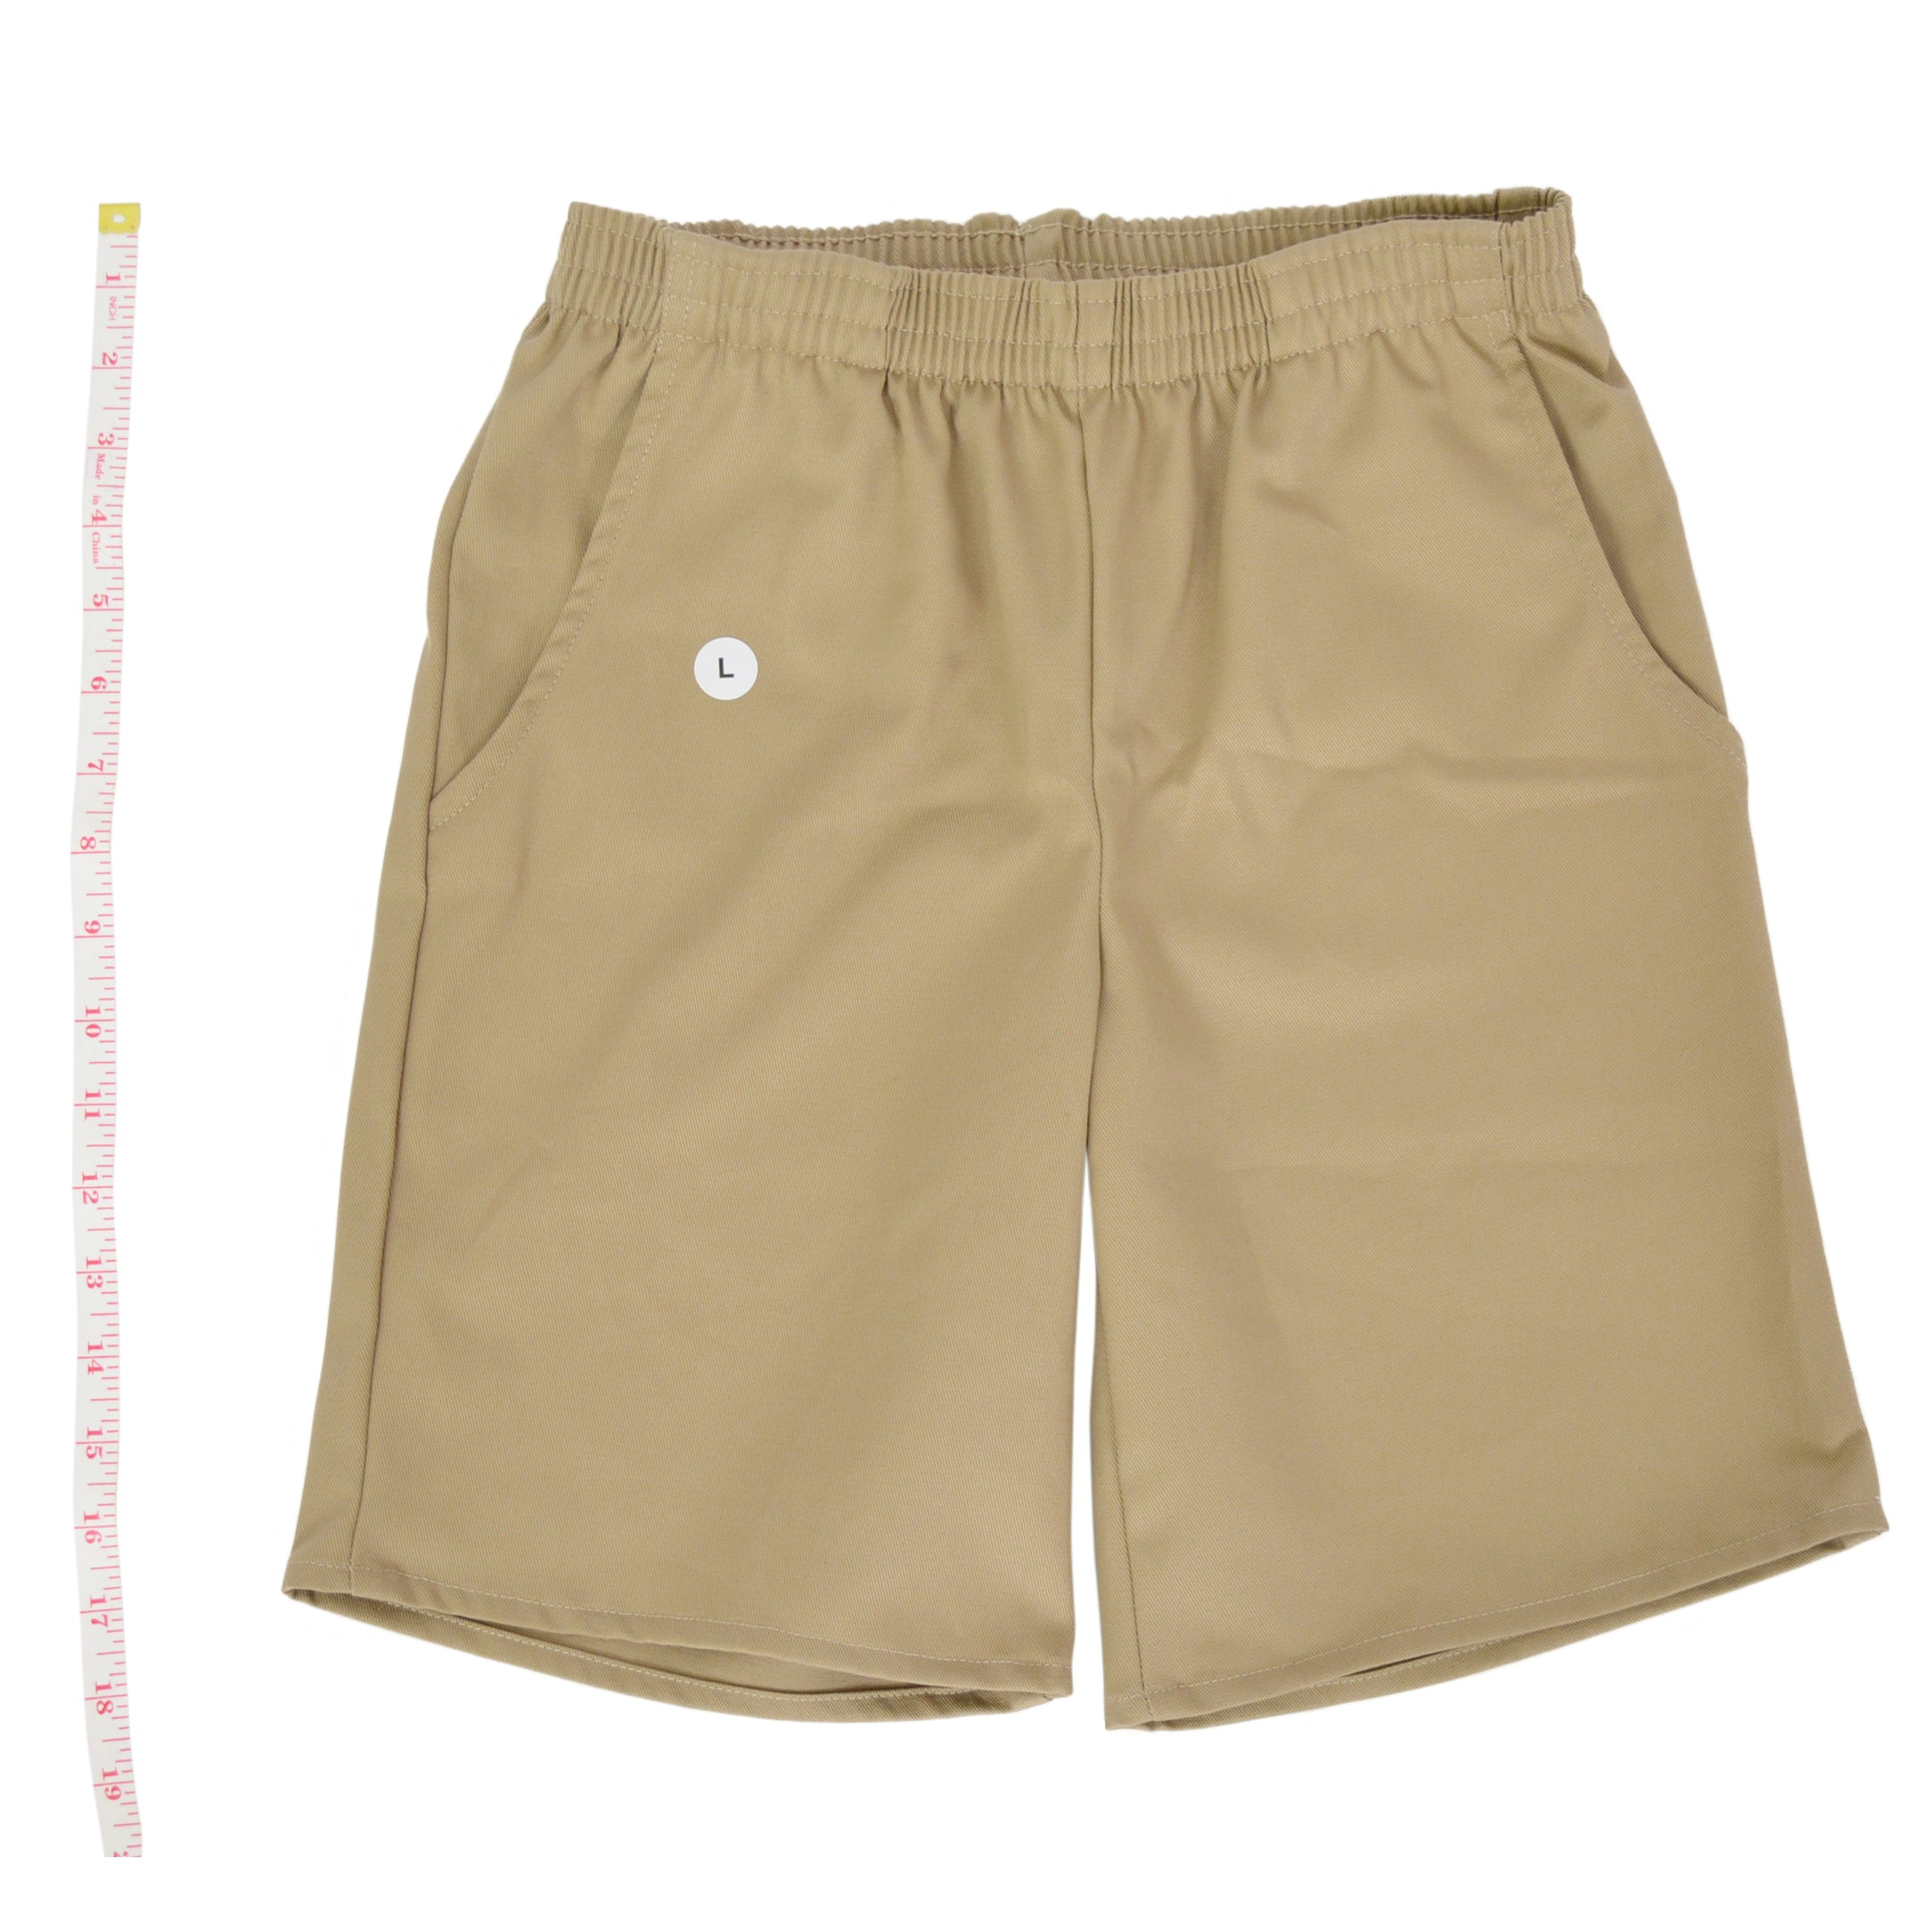 Boy's Uniform Shorts